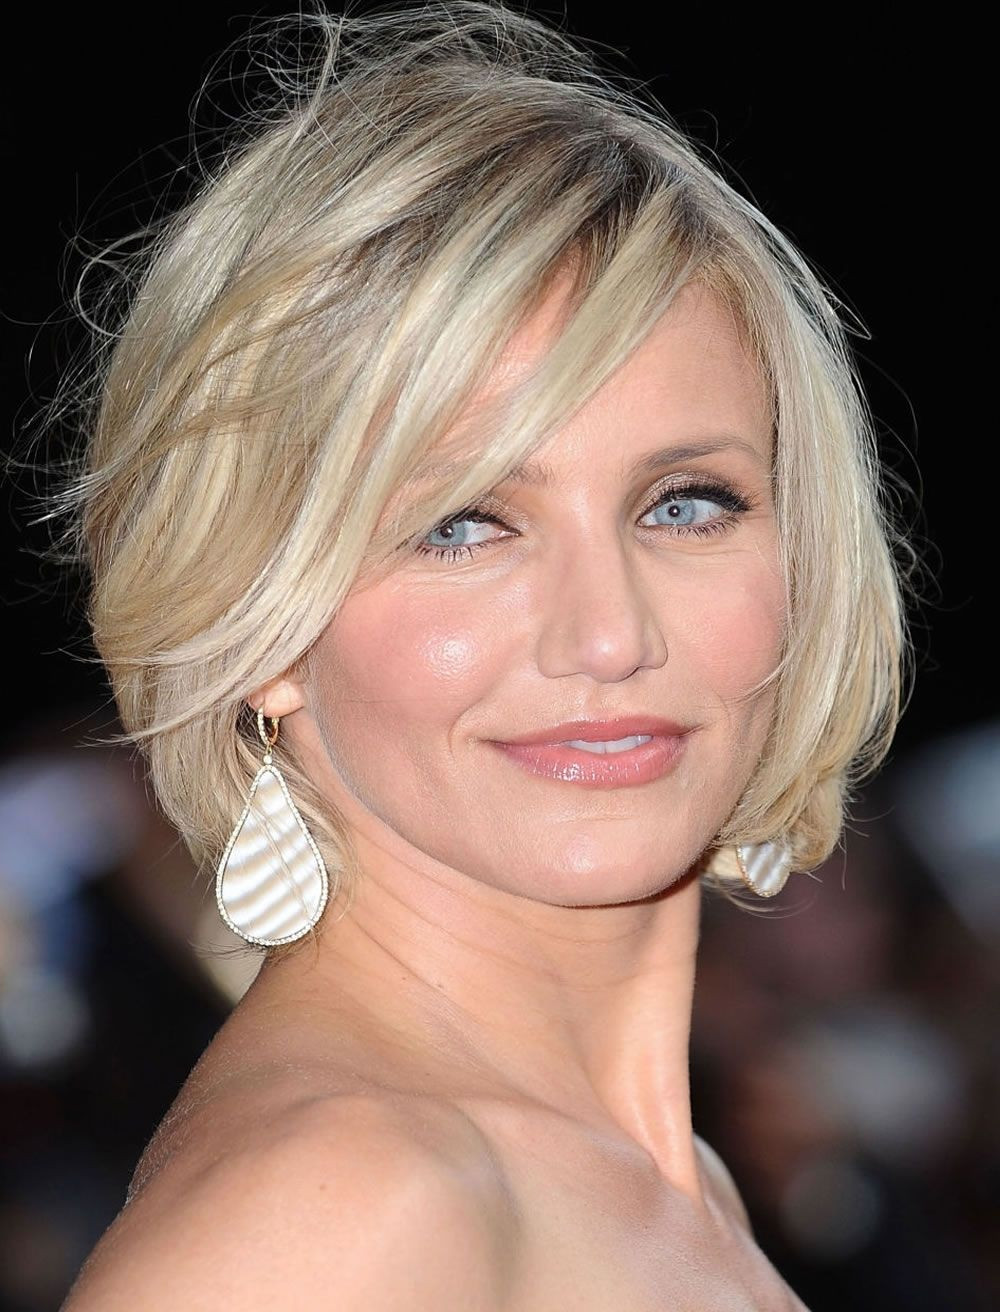 Best ideas about Hairstyles For 40 Year Old Woman With Fine Hair . Save or Pin Bob Hairstyles For Older Women Over 40 To 60 Years 2017 Now.